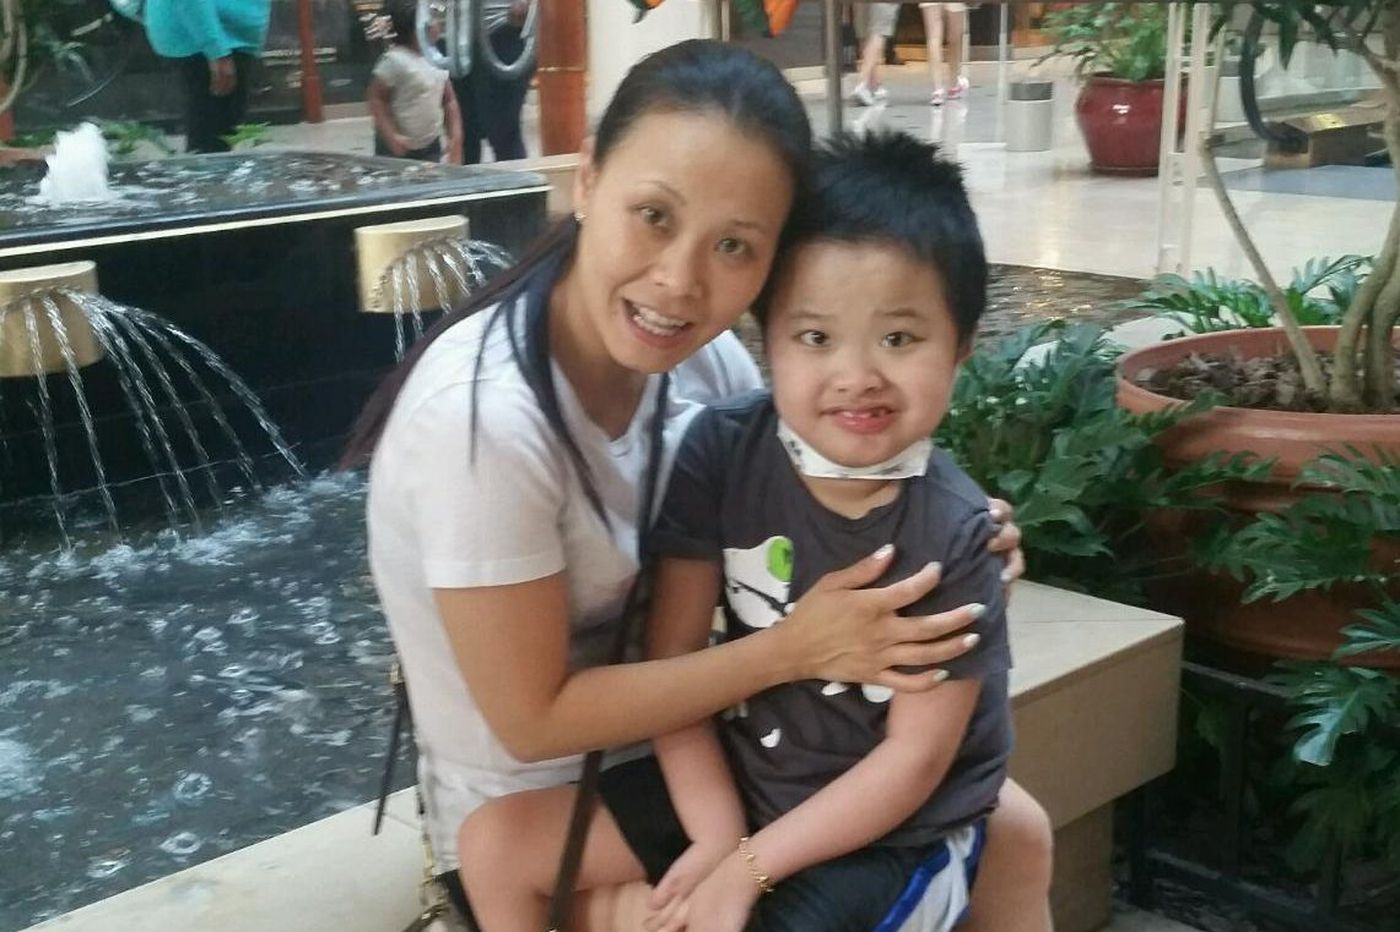 Second family challenges CHOP decision to remove child from life support